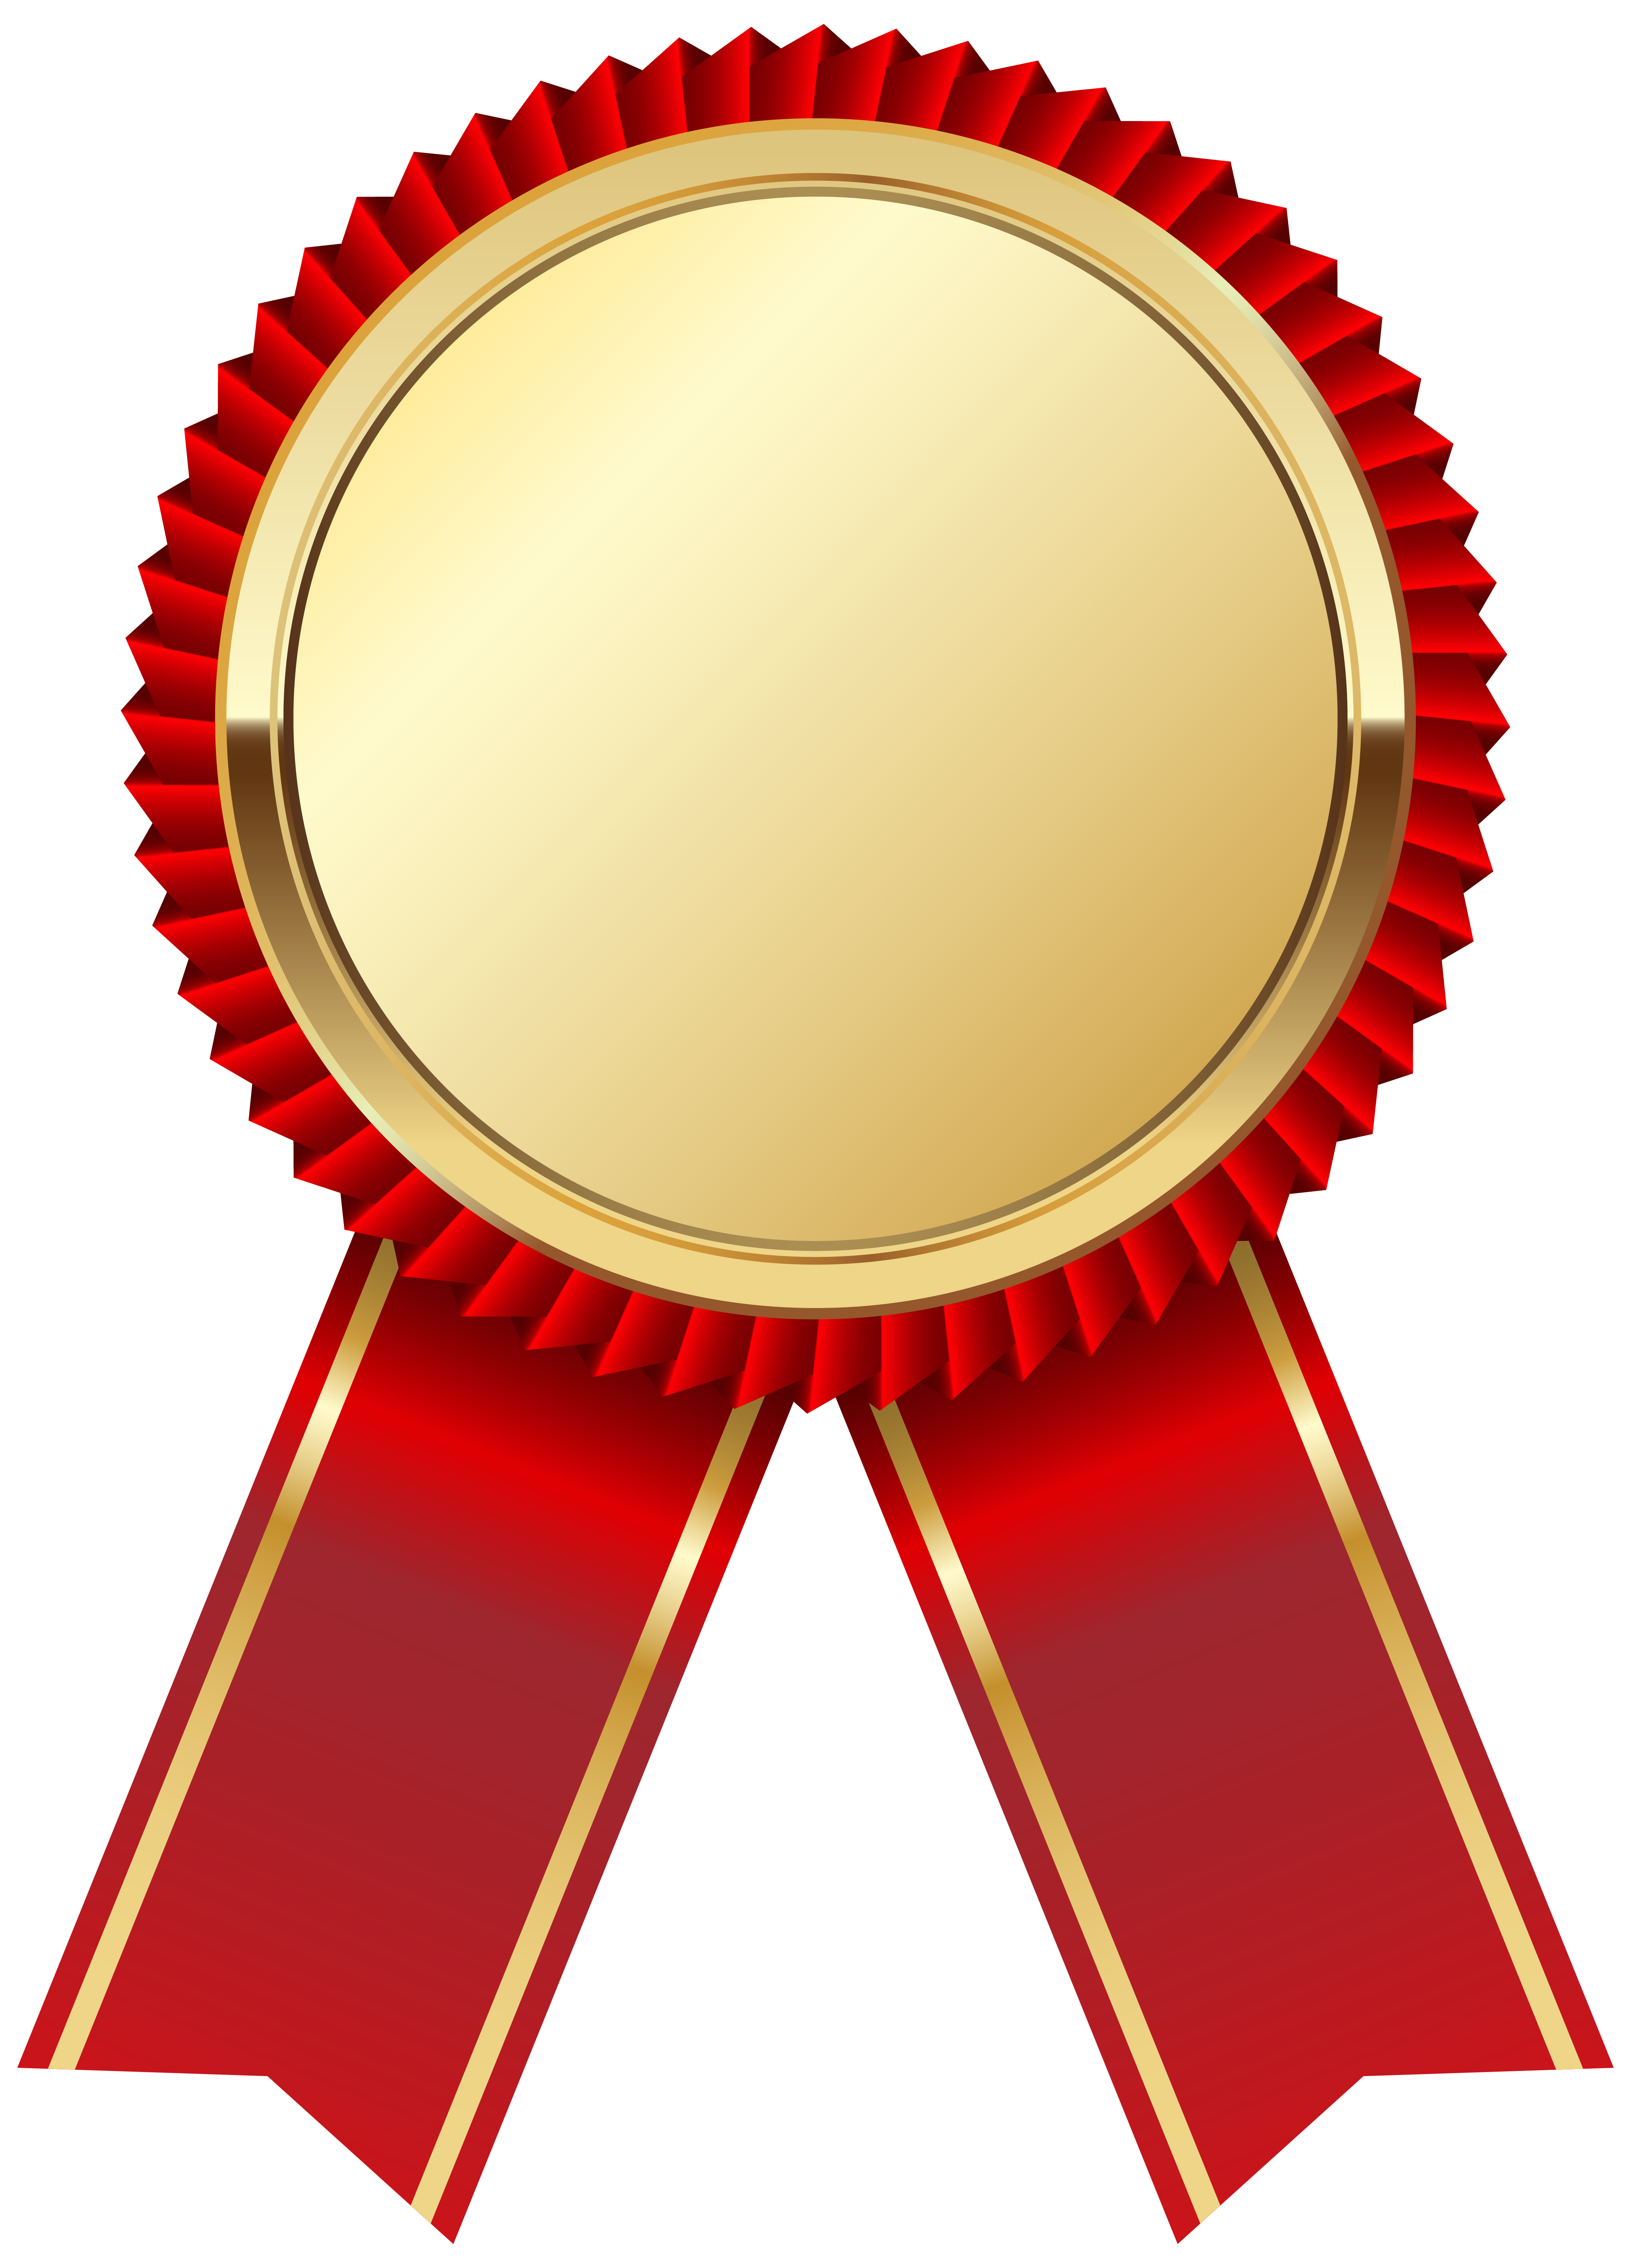 Free medal clipart graphic transparent download Free Medal Cliparts, Download Free Clip Art, Free Clip Art on ... graphic transparent download